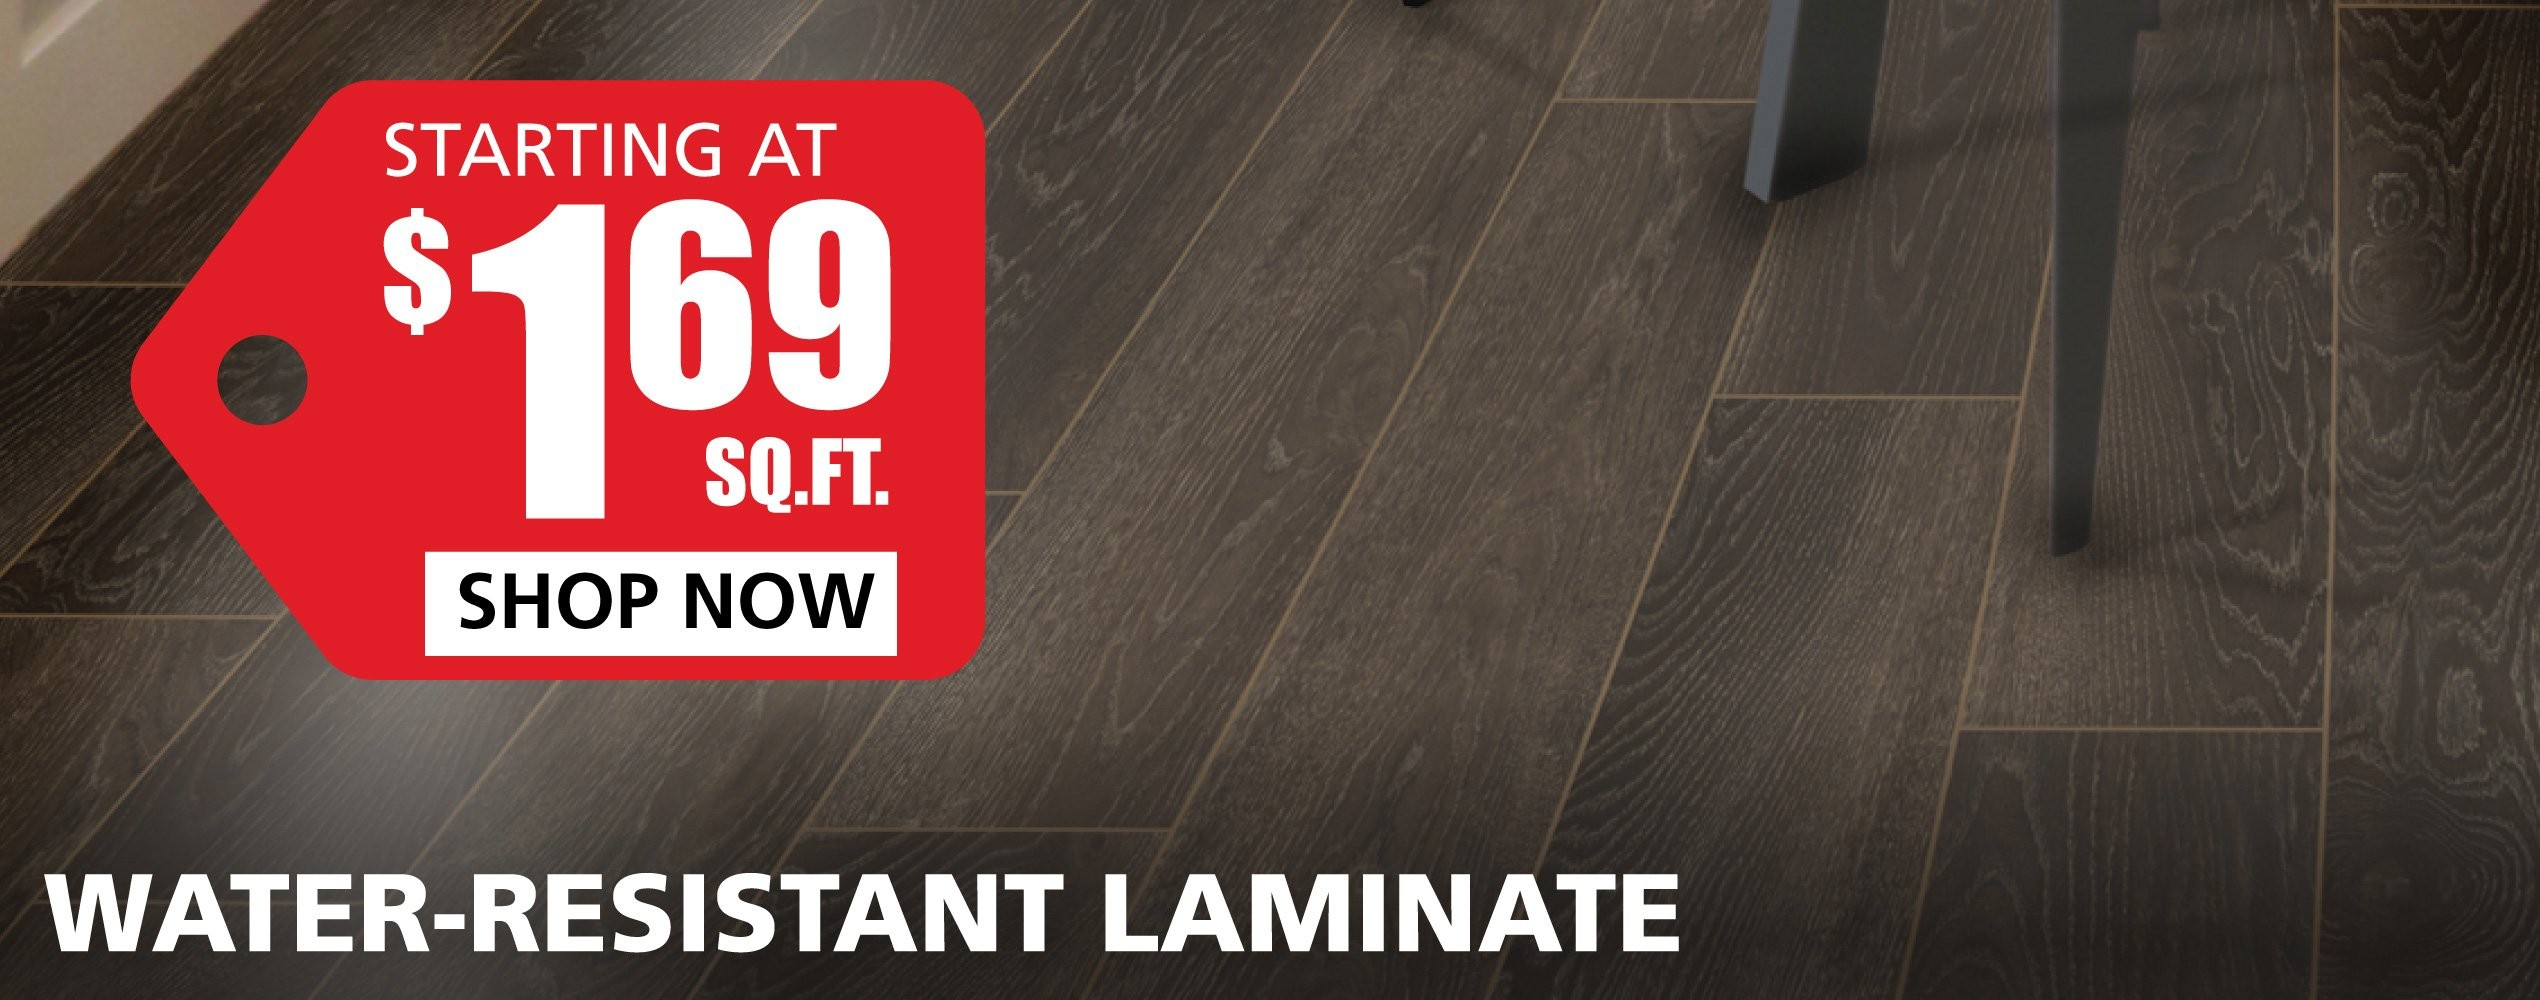 Water Resistant Laminate starting at $1.89 per square foot